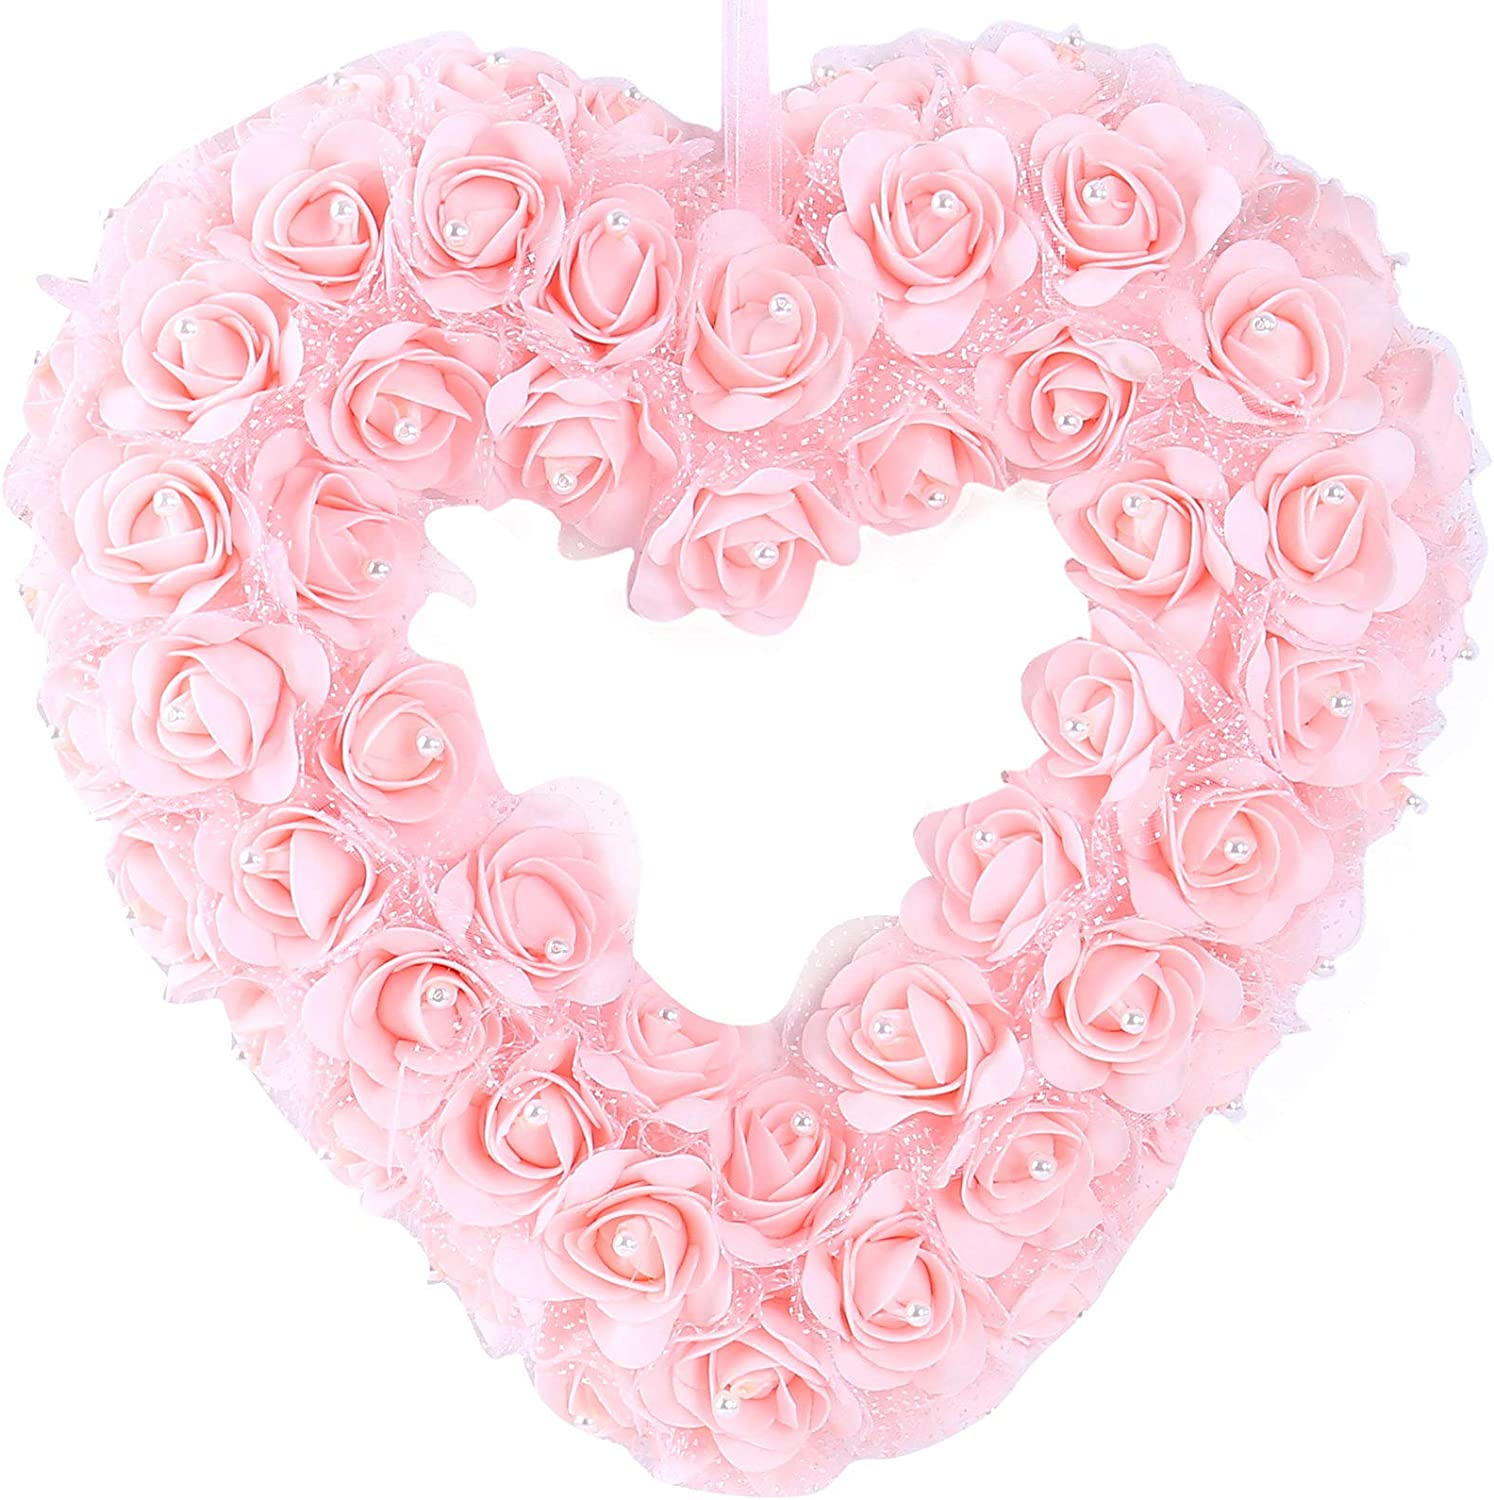 idyllic Heart Shaped Wreath Floral Rose Artificial Garland Door Wreath for Home Wedding Valentine's Day Decoration, Pink, 14 inches